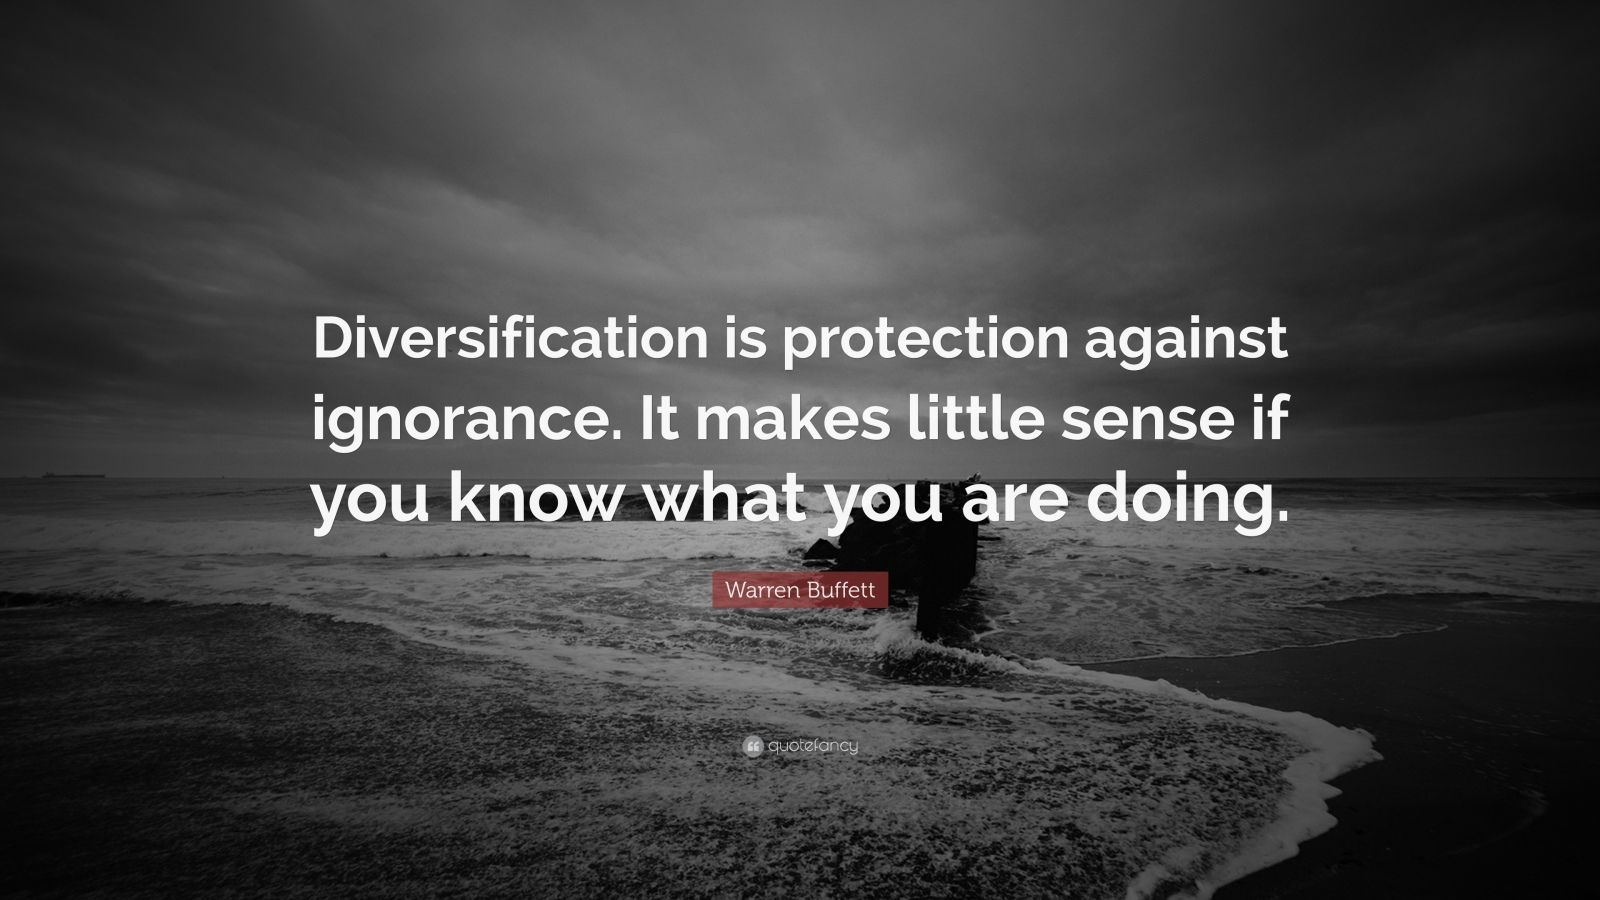 """Warren Buffett Quote: """"Diversification is protection against ignorance. It makes little sense if you know what you are doing."""""""